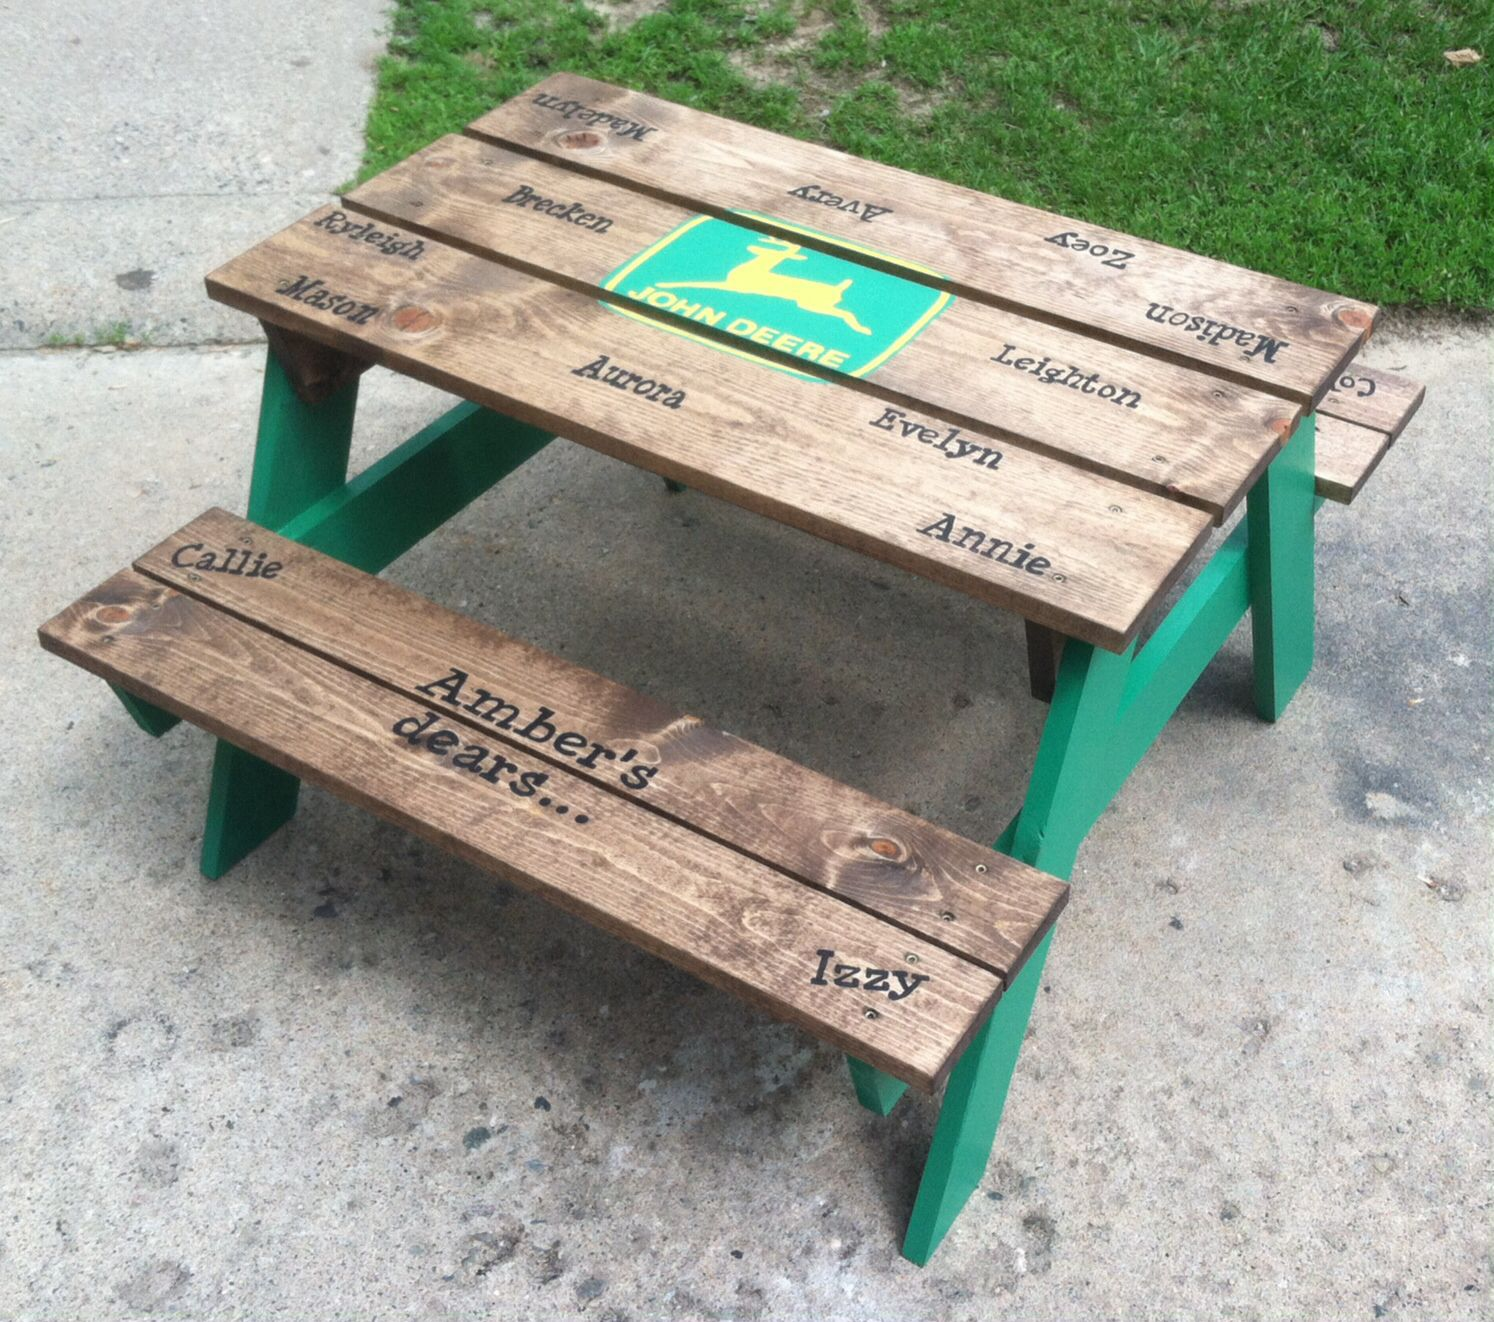 Painted a John Deere themed picnic table for my daycare kiddos